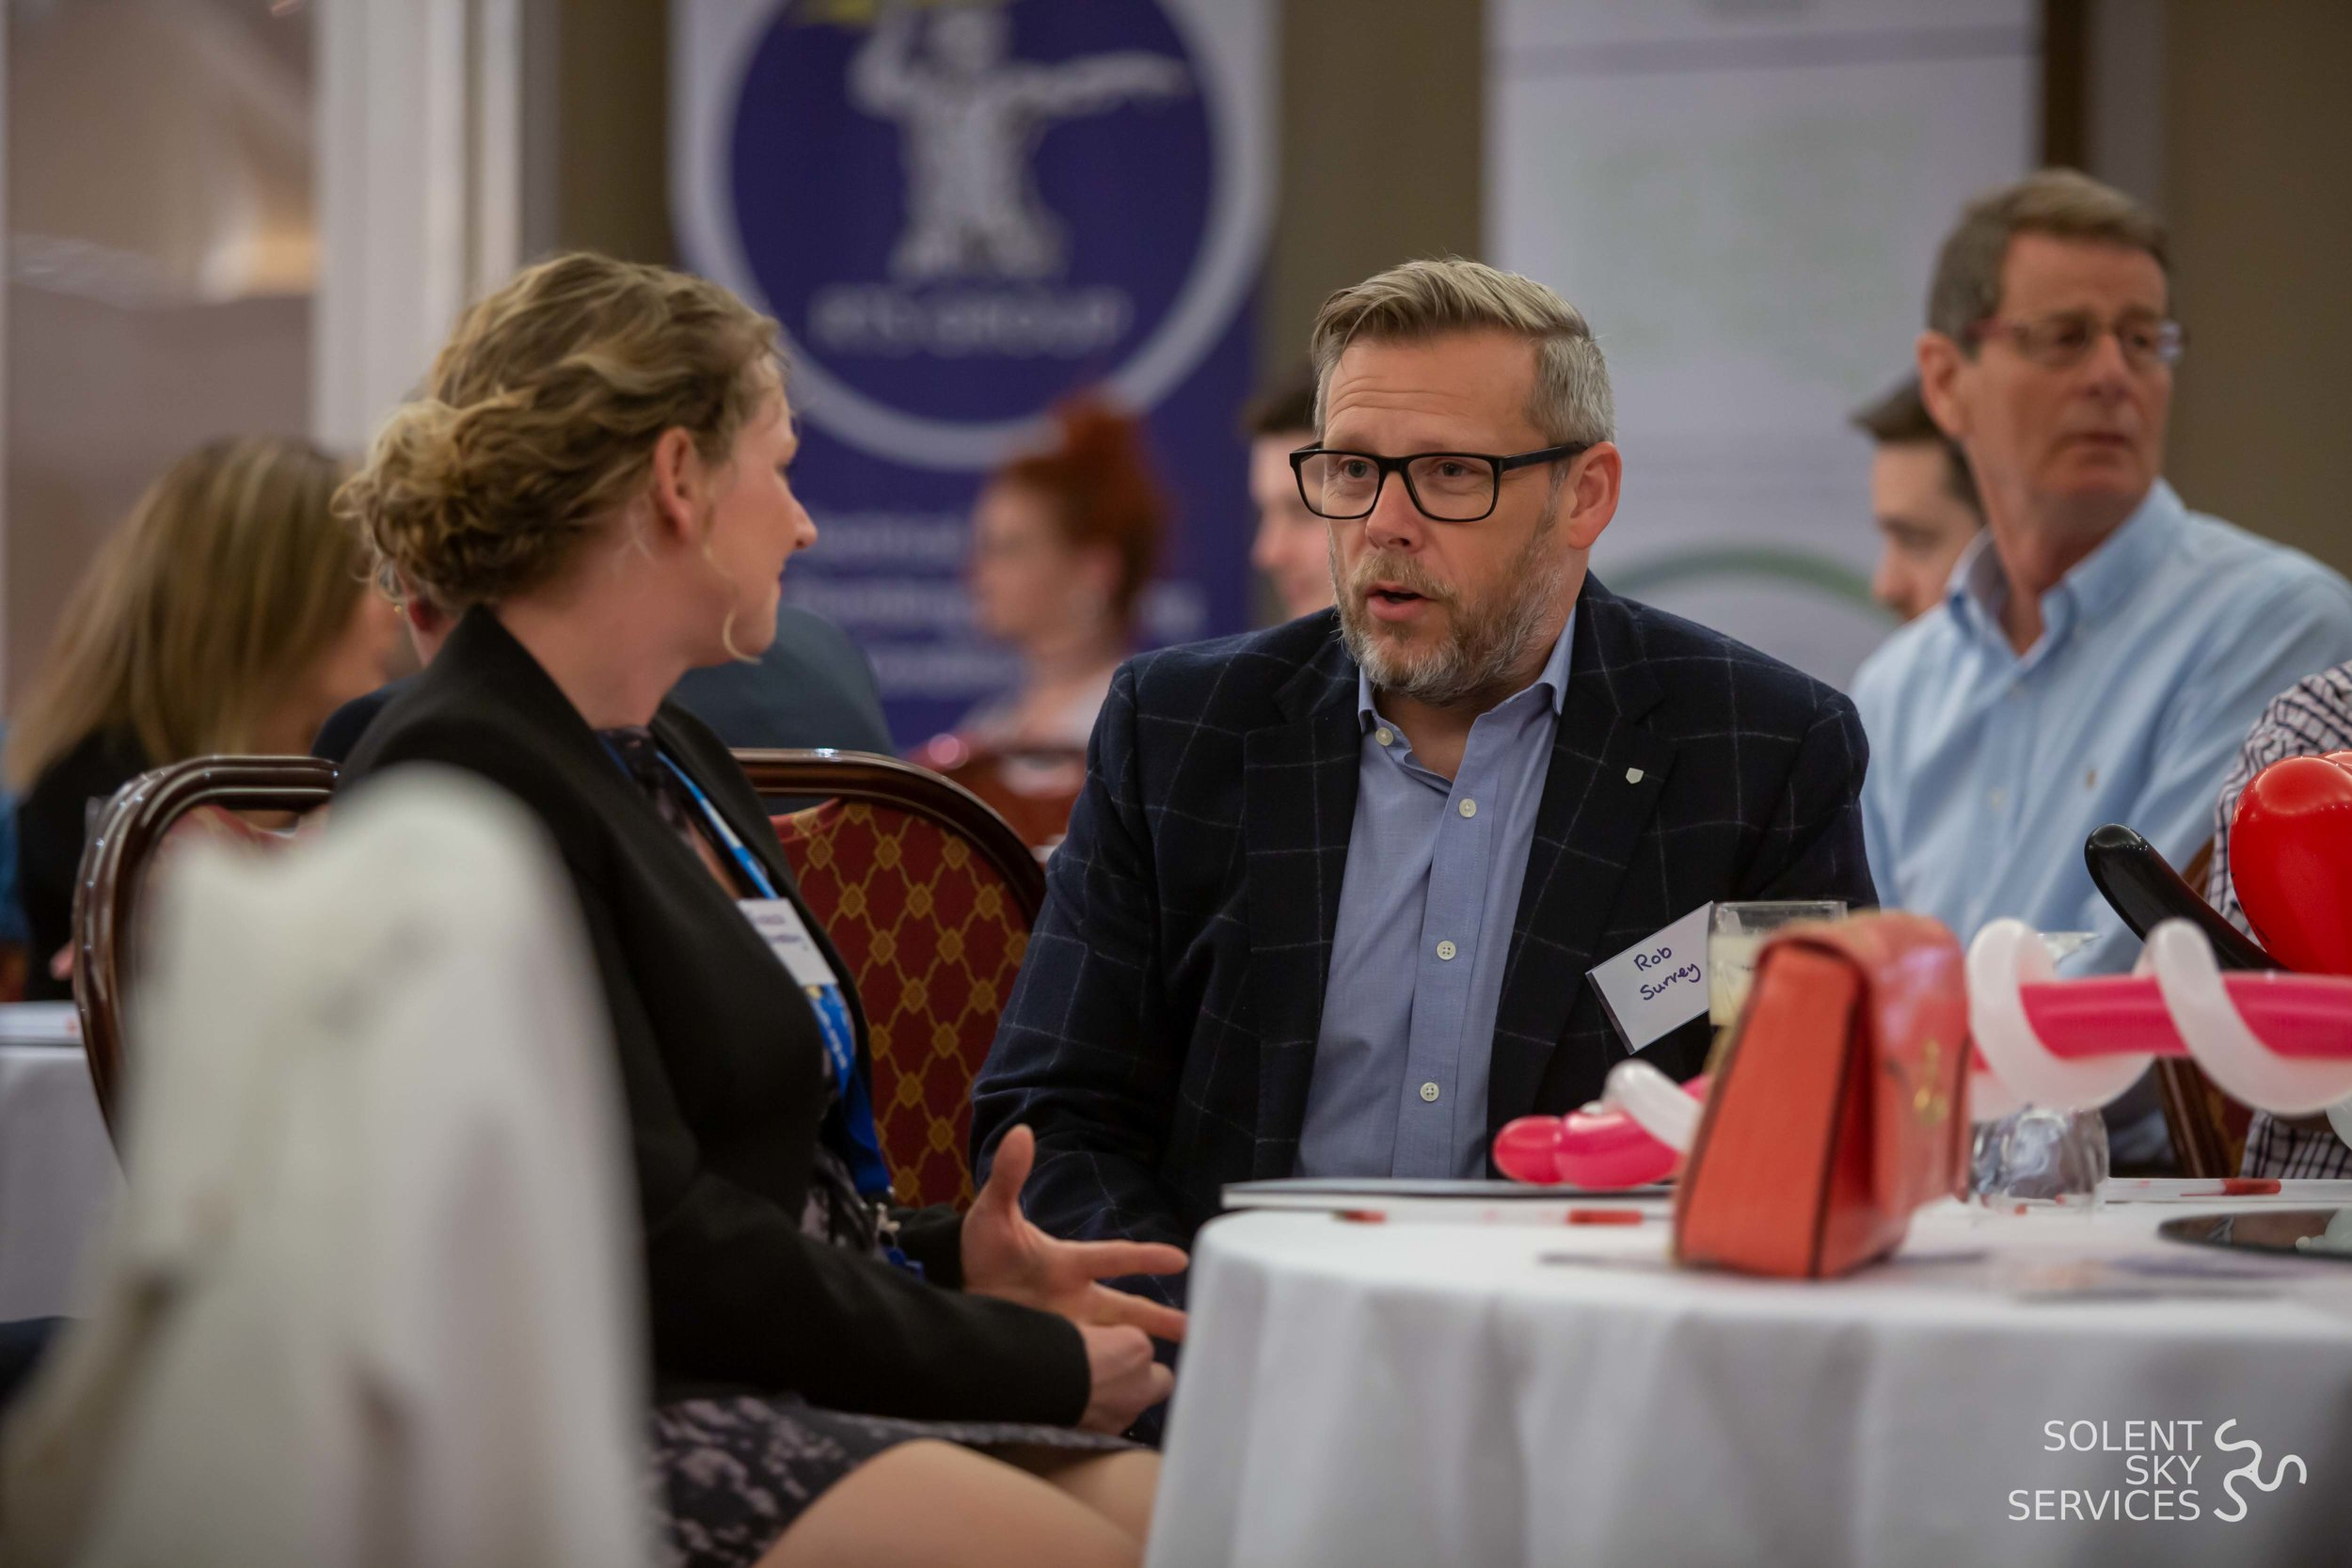 Synergy Success Networking Event #2 - Solent Sky Services-28.JPG